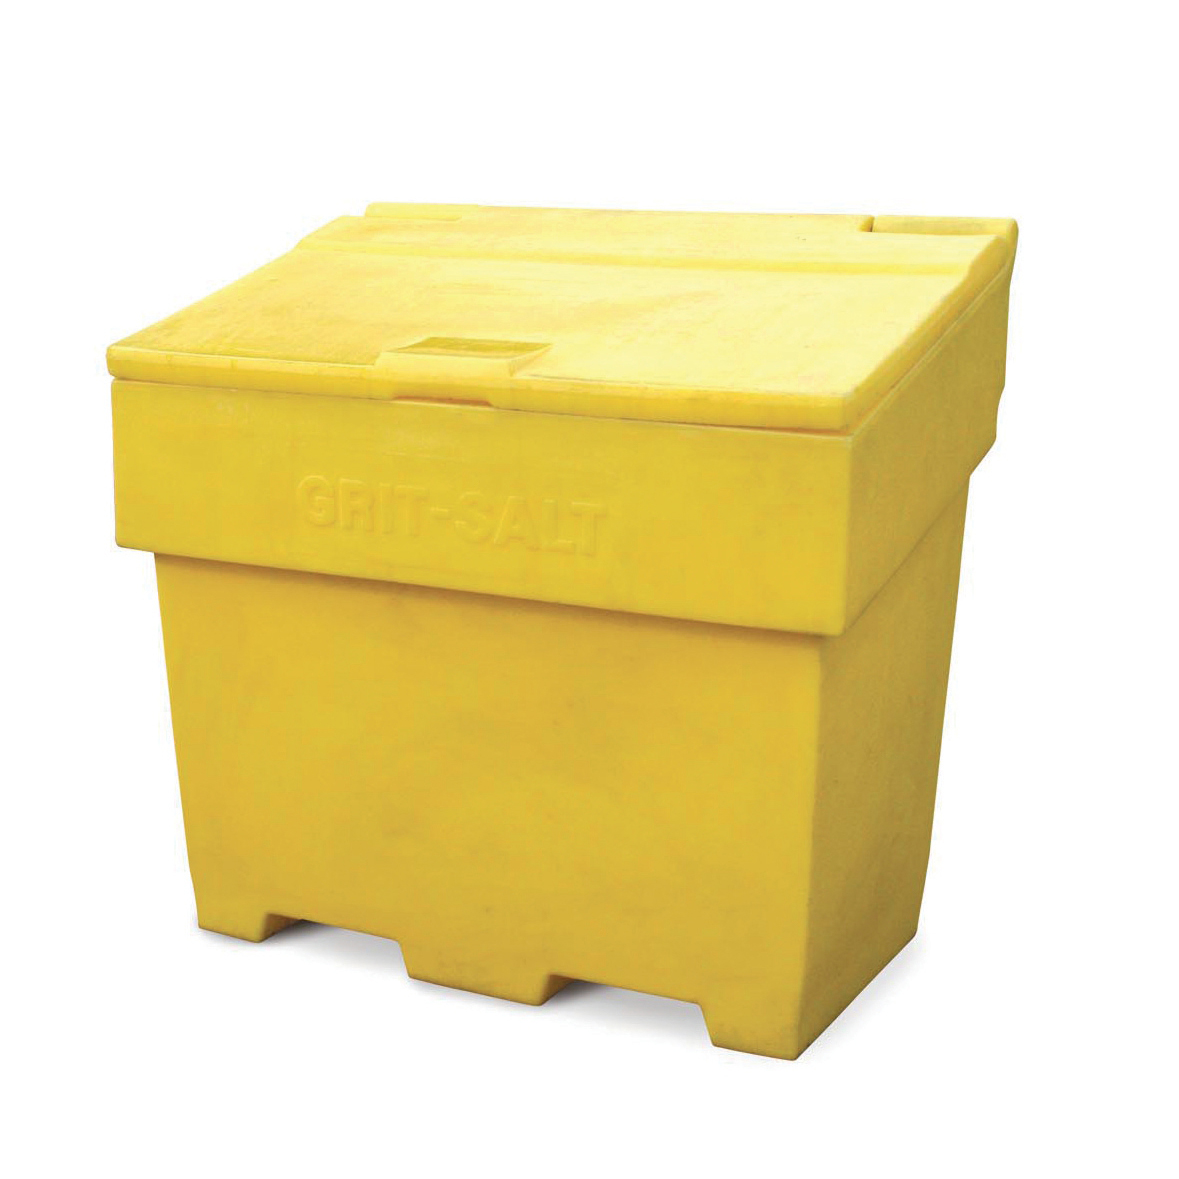 Grit Bins & Accessories Bentley Grit and Salt Bin Polyethylene Capacity 400kg Weight 22kg Ref SPC/GRIT400